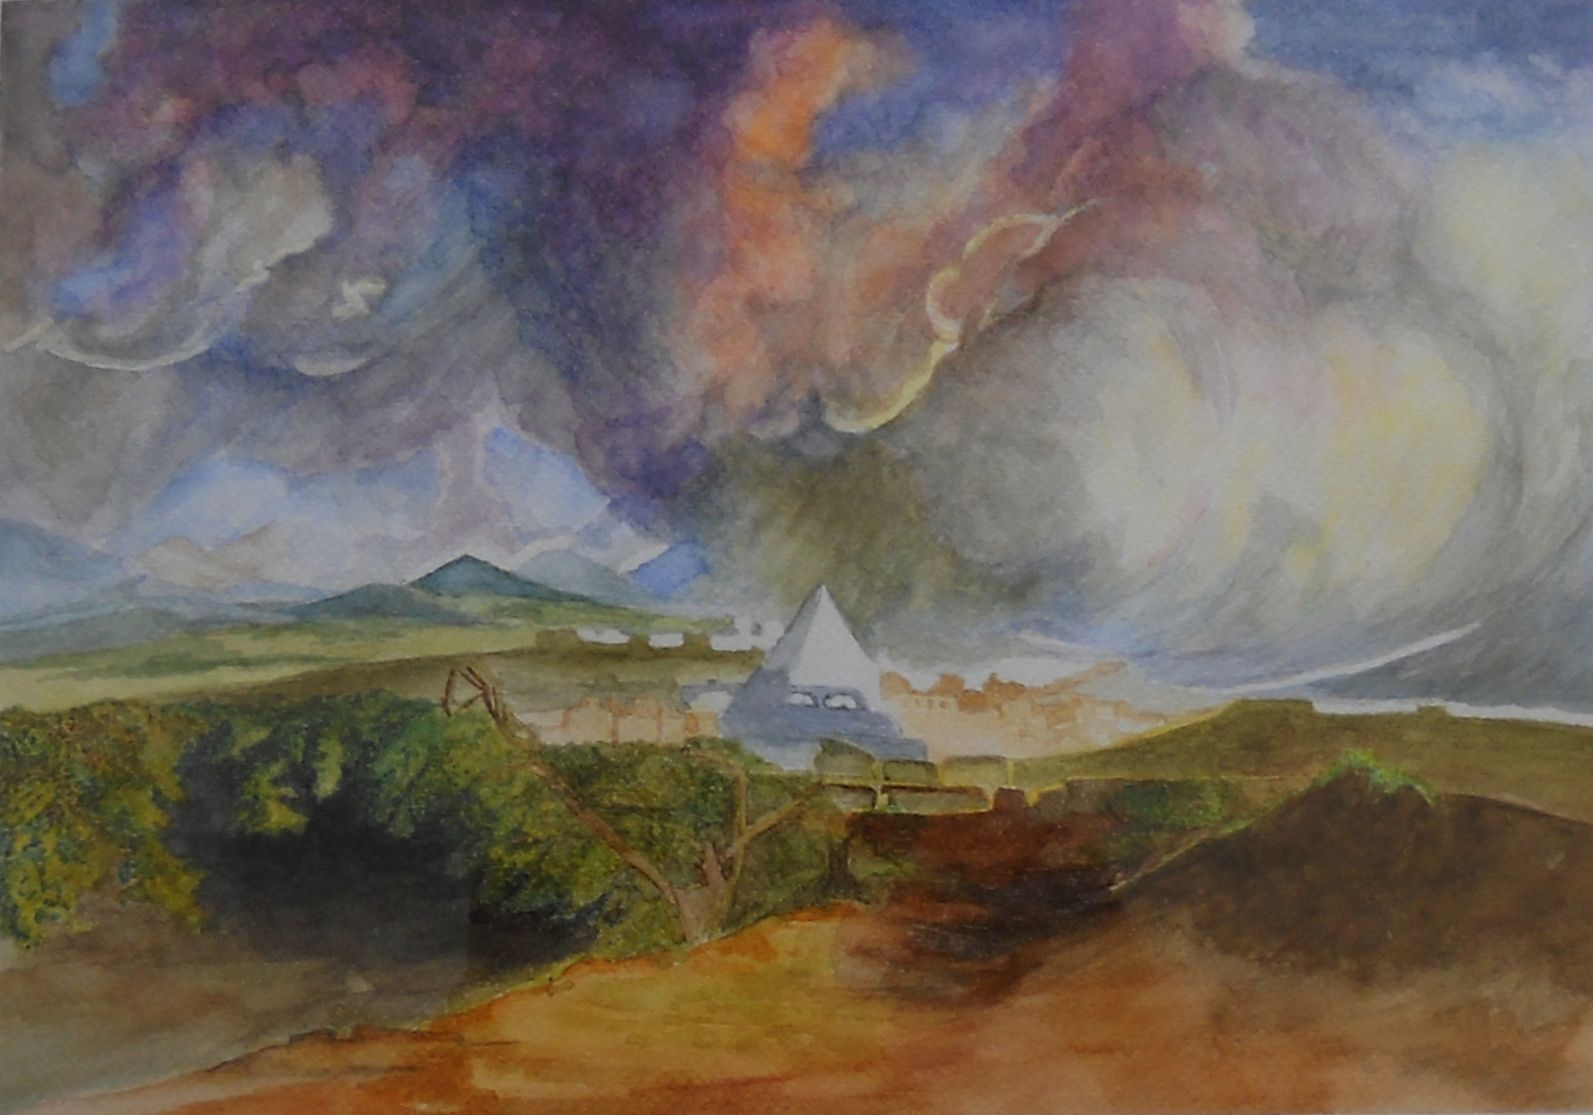 Watercolour 26x36 - Study on W.Turner's light by Ana Lucia Sobral